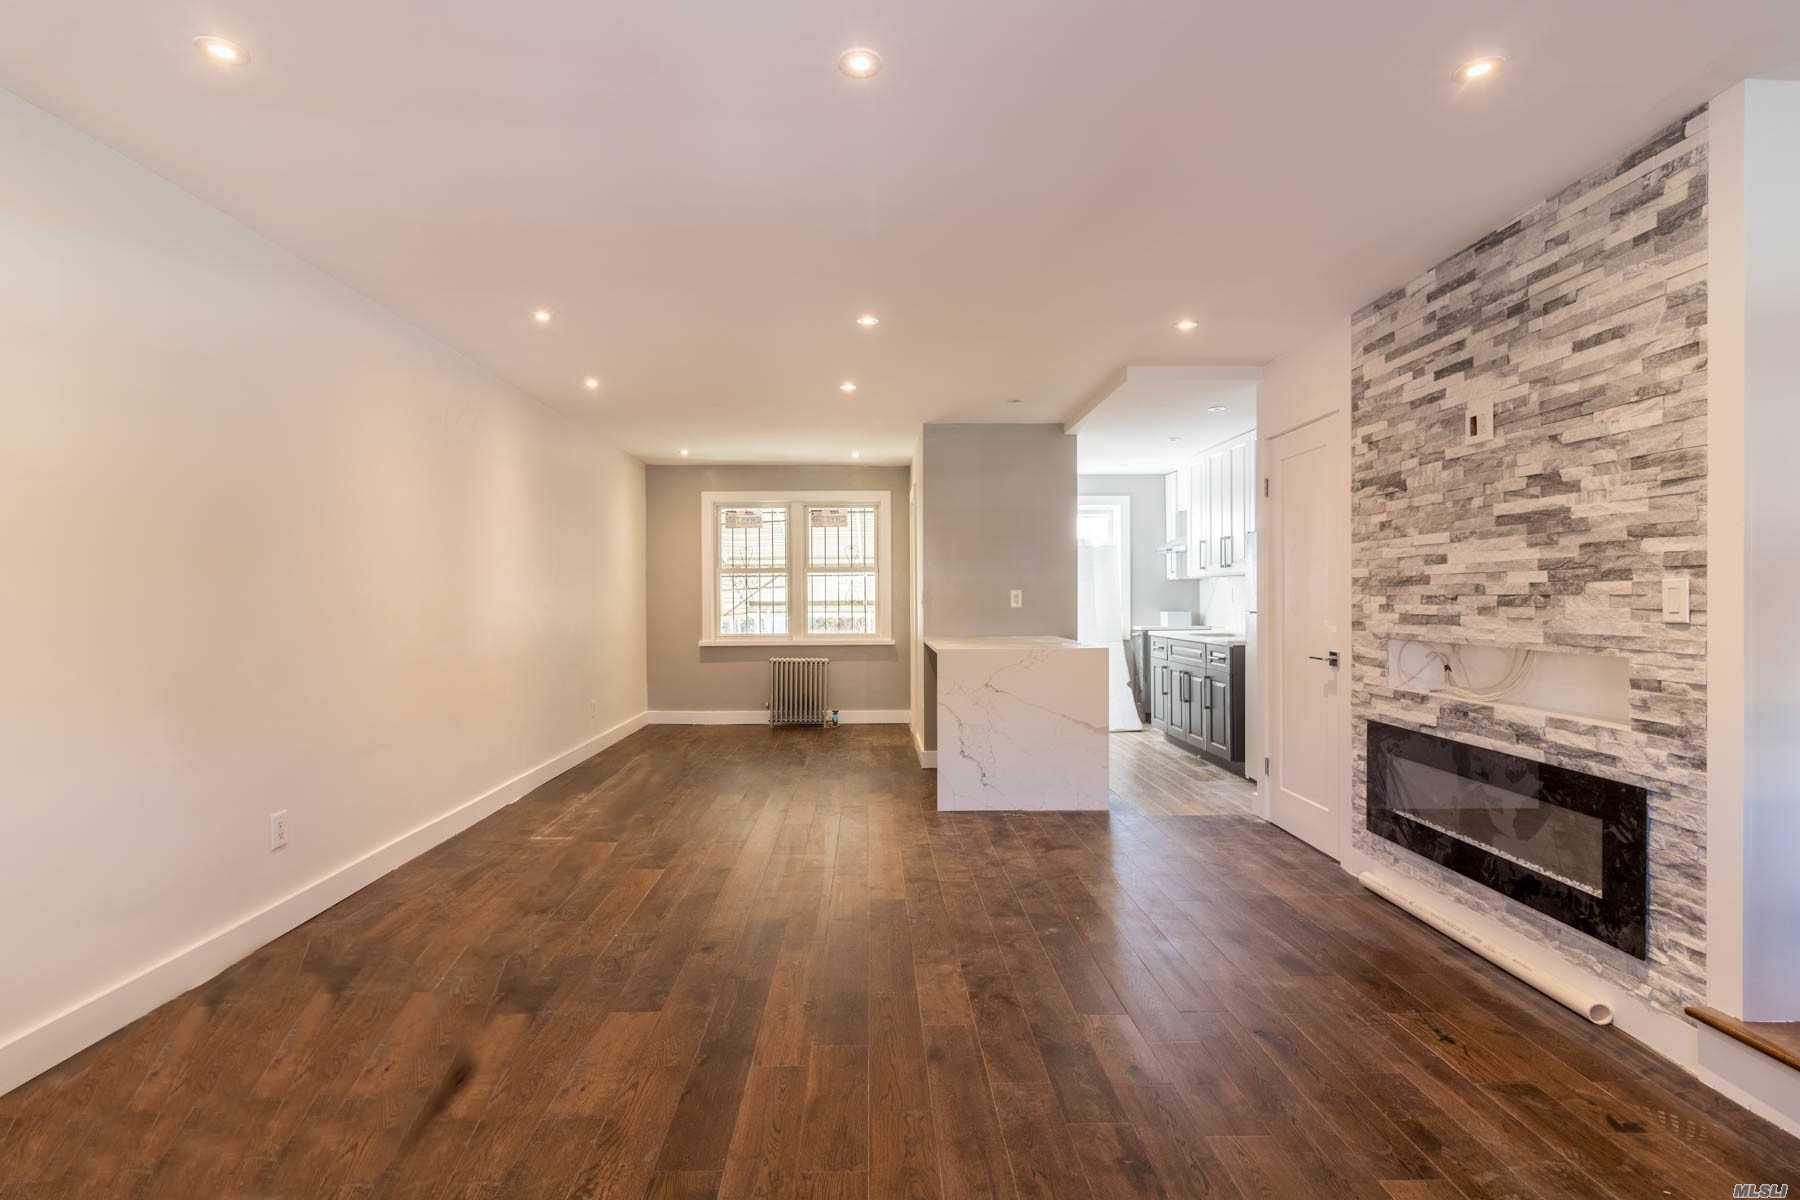 Immaculate fully renovated brick home in the heart of E. Elmhurst. Brand new hard wd floors, custom combo kit w/granite counters and s.s. apps. LR w/custom frpl, recessed lights throughout. Large above ground bsmt with 2 entrances! Huge private backyard, half block to transportation, school, and more! Must see!